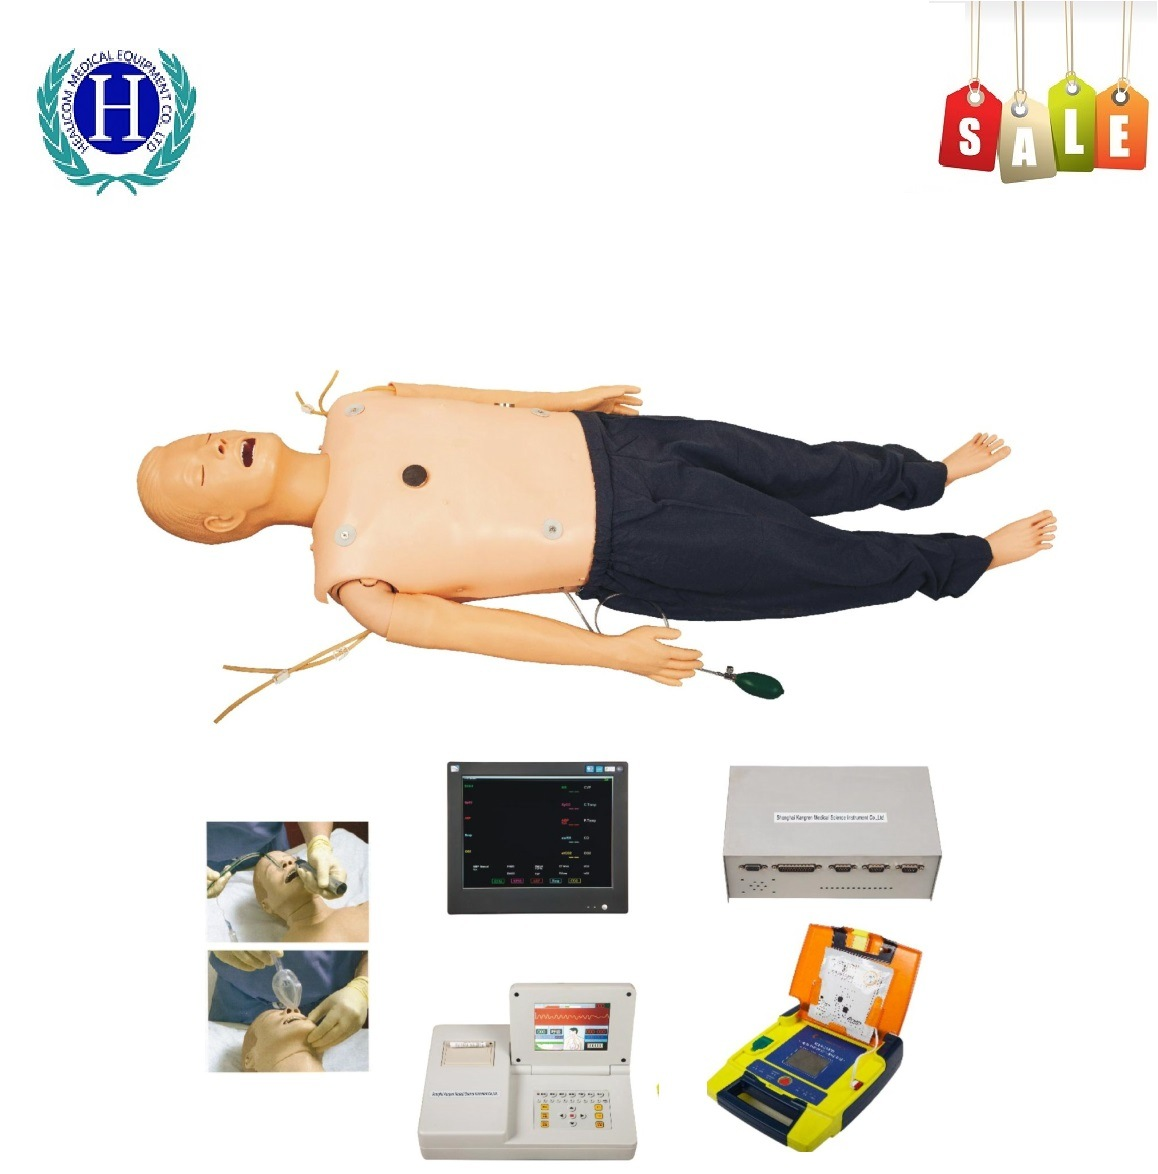 1f1f53e780 China Defibrillation, Defibrillation Manufacturers, Suppliers, Price    Made-in-China.com